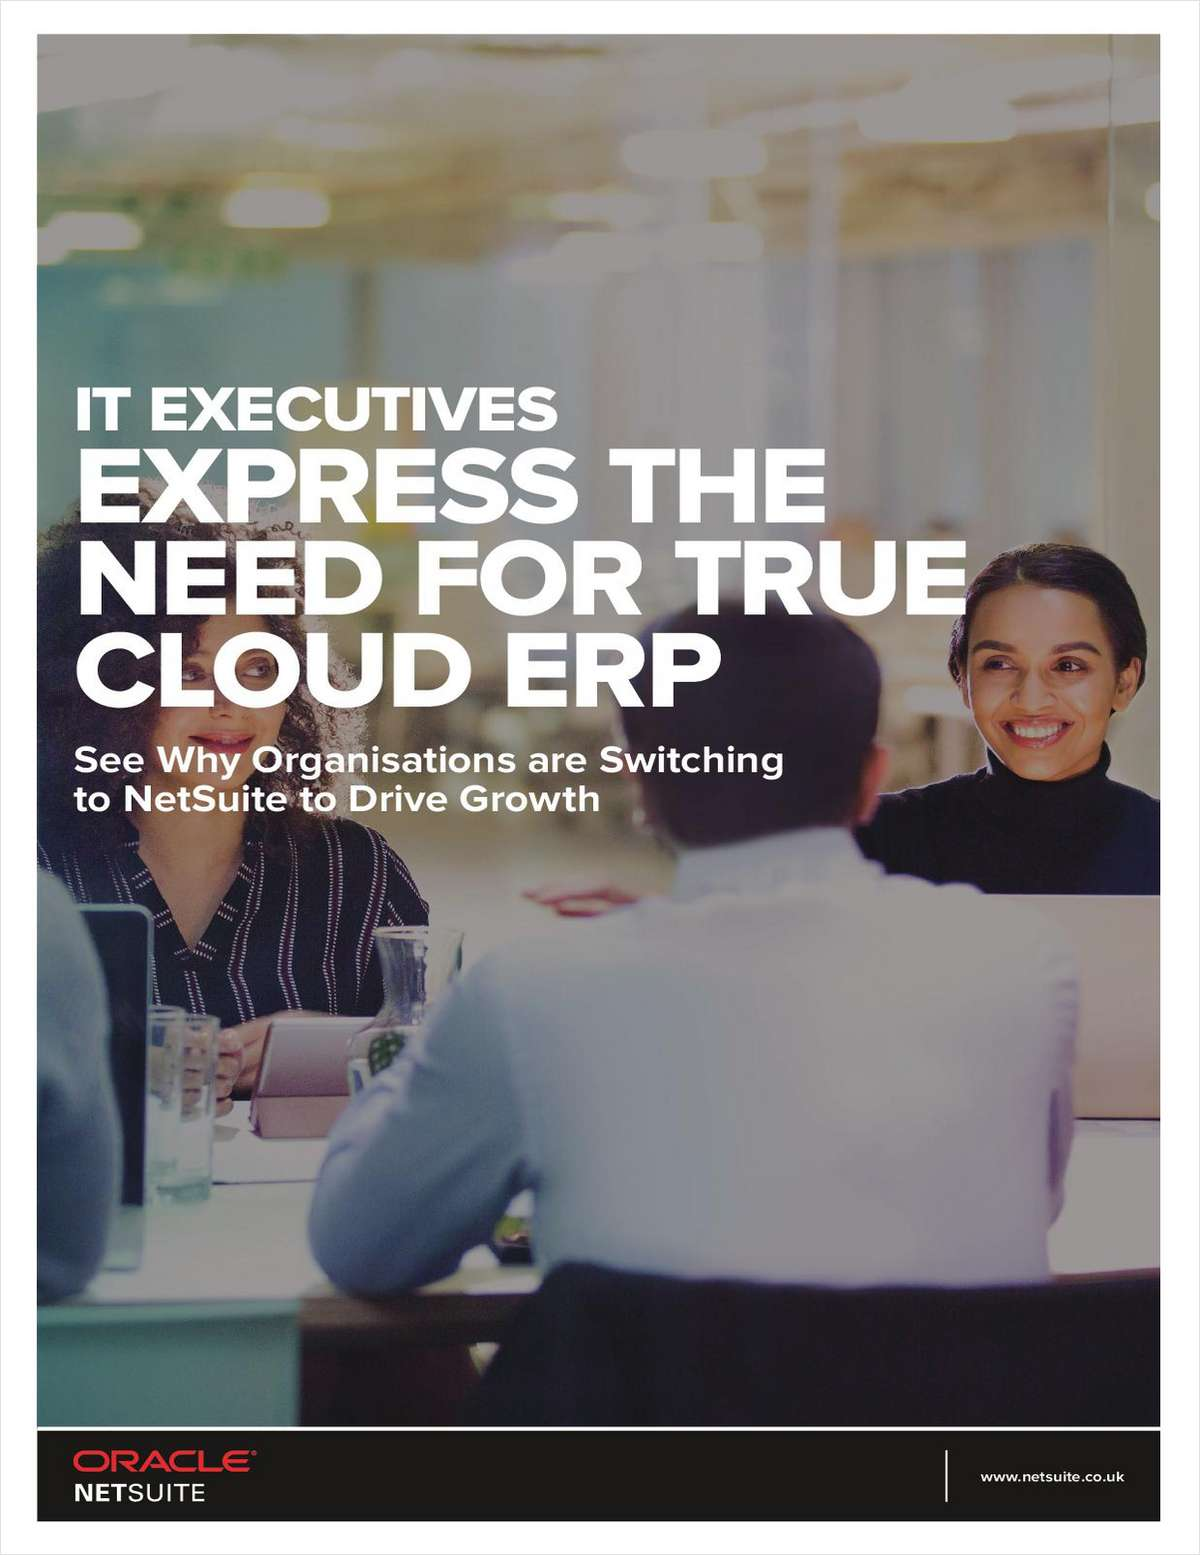 IT Executives Express the Need for True Cloud ERP